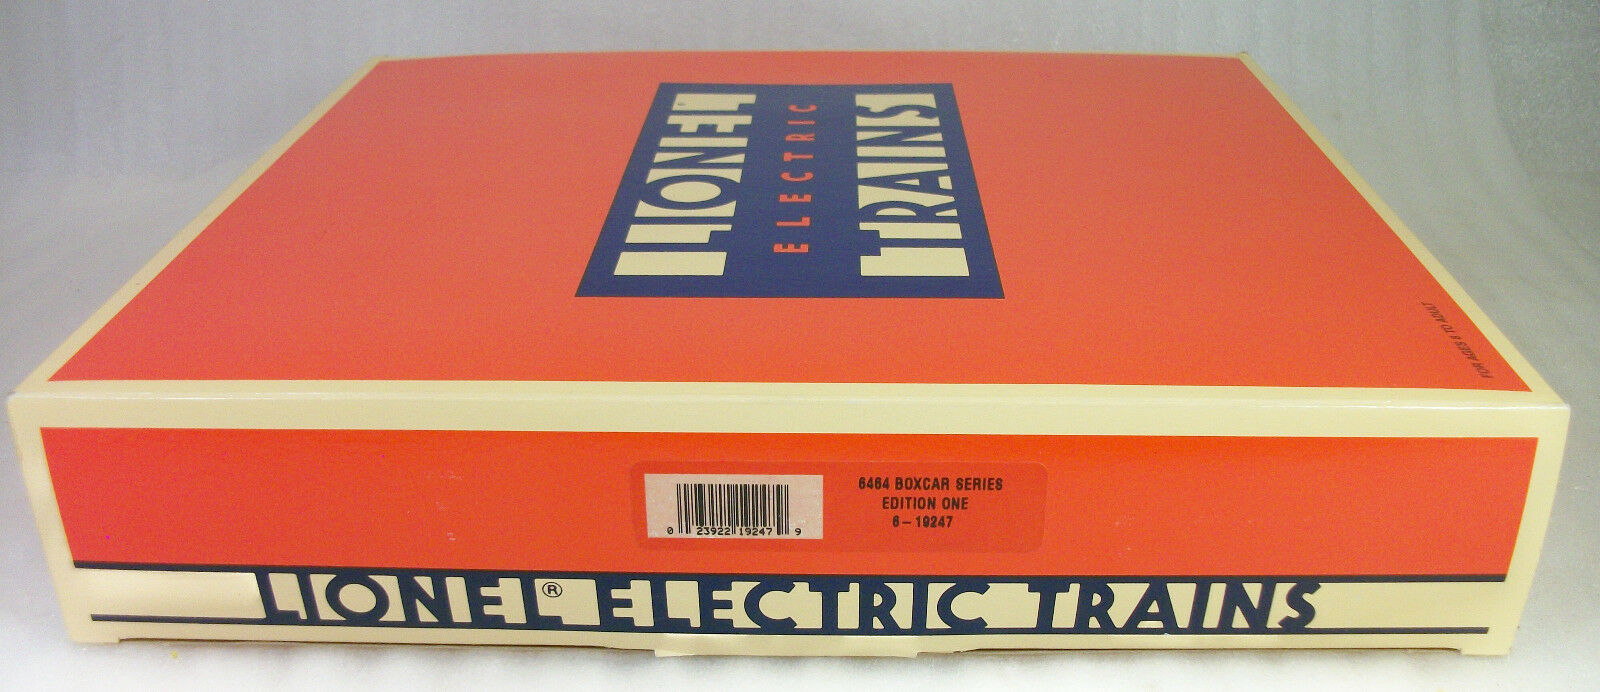 LIONEL 19247 RARE SERIES 1 of THE 6464 BOX CARS CIRCA 1993 MINT OBs + MASTER BOX